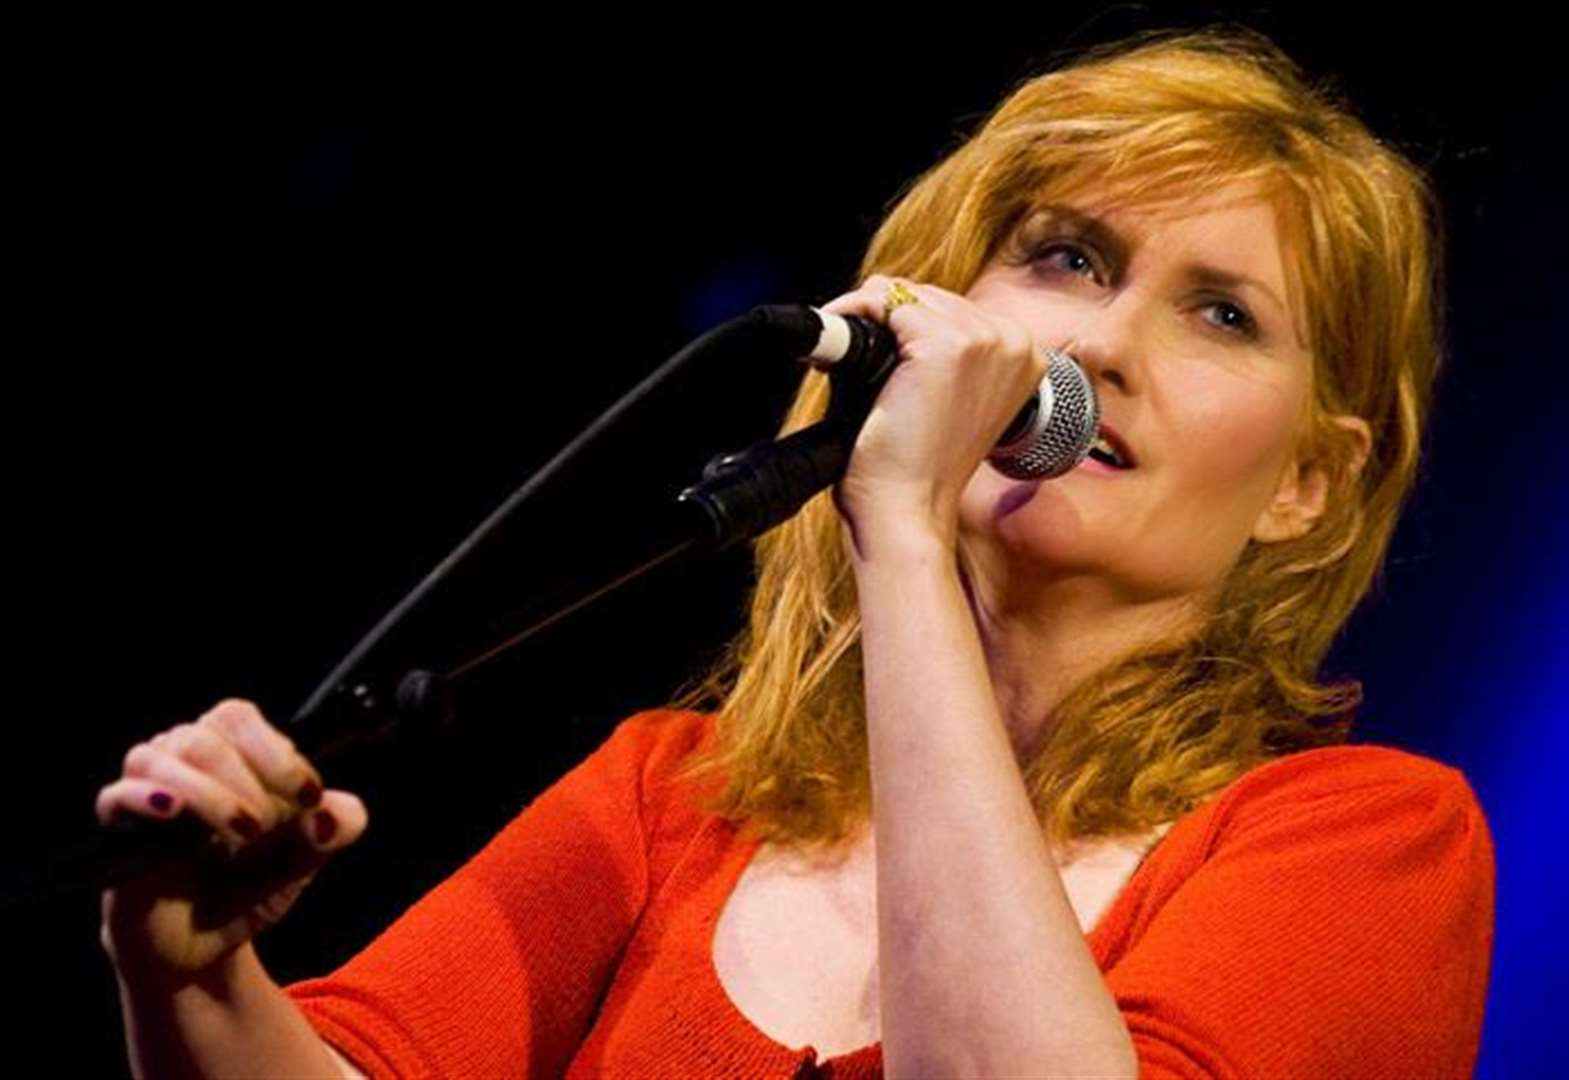 KING'S LYNN FESTIVAL CONCERT REVIEW: Eddi Reader at St George's Guildhall